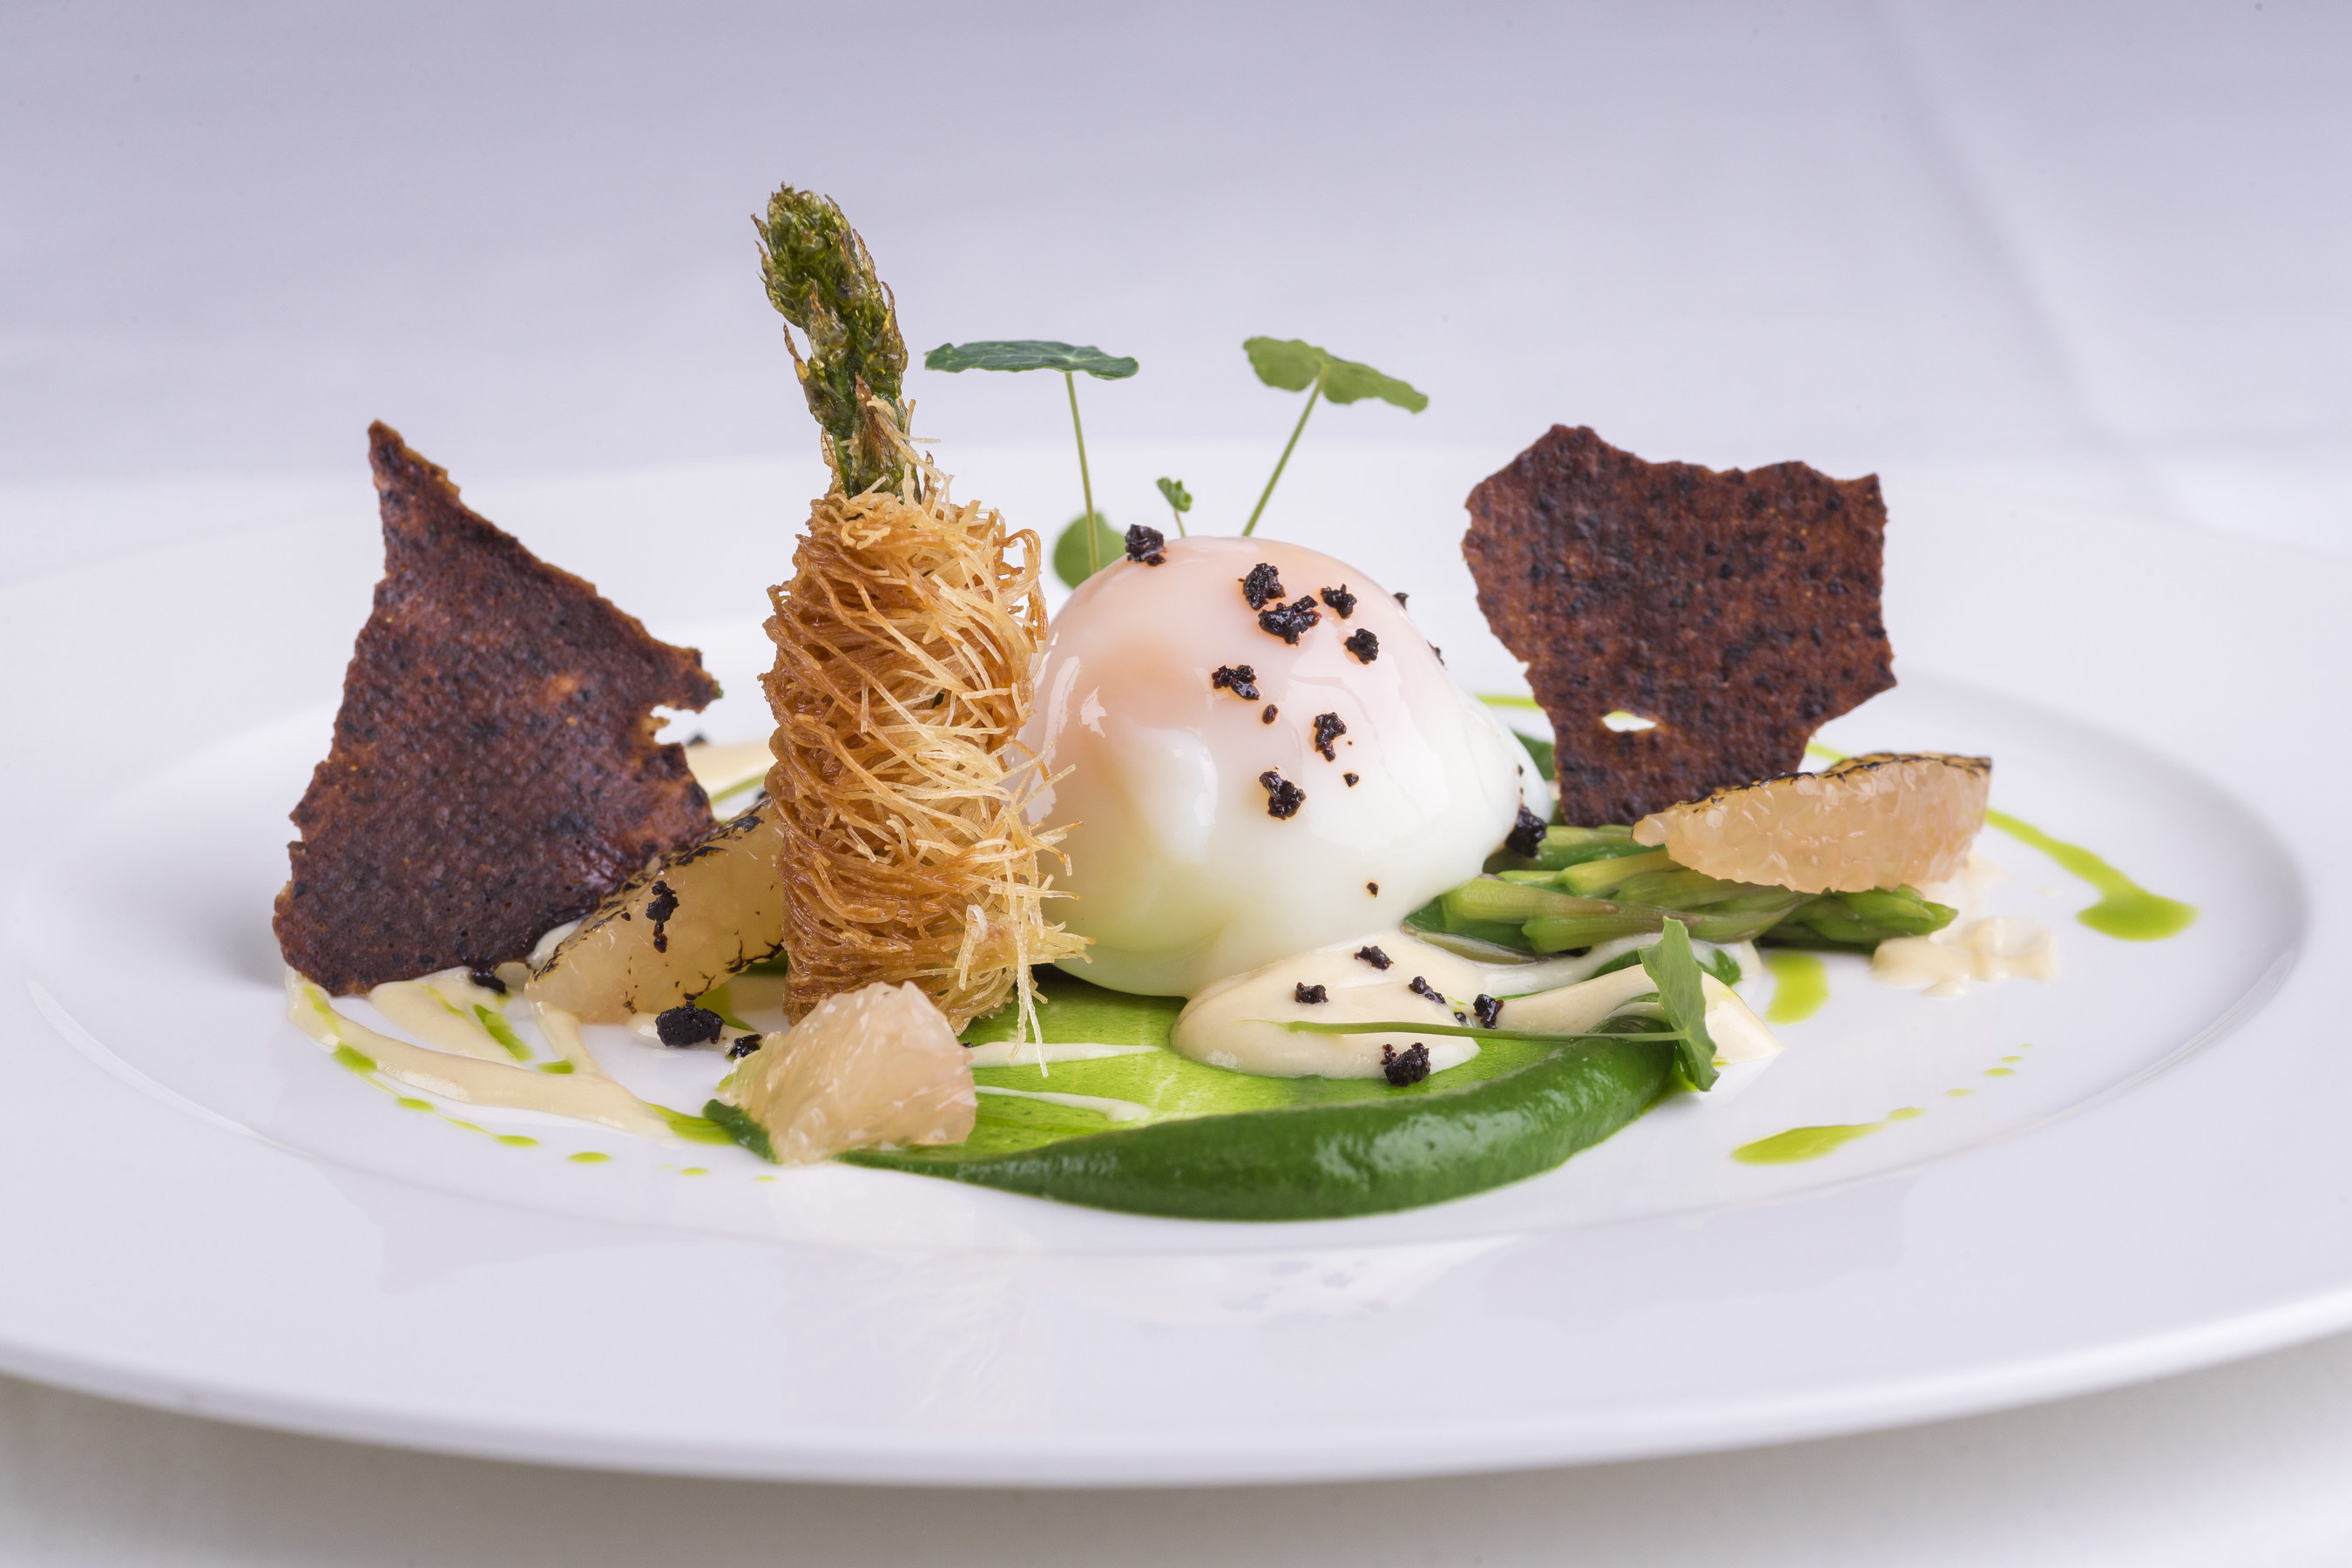 Asparagus Specialties with Oeuf Mollet and Pink Grapefruit, a new menu offering in The Verandah.